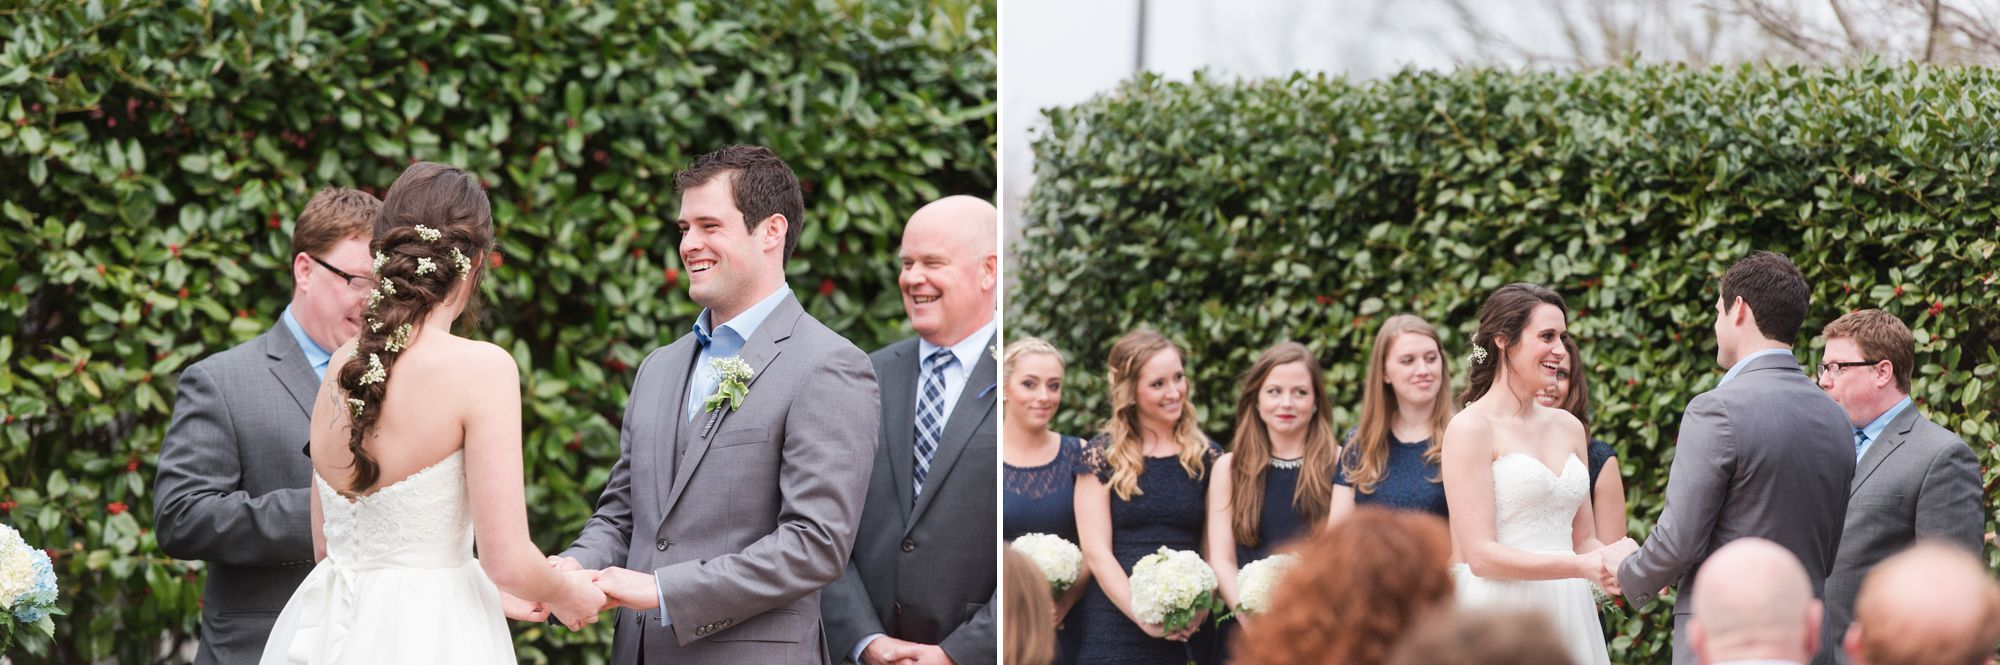 uptown-charlotte-wedding-pictures 17